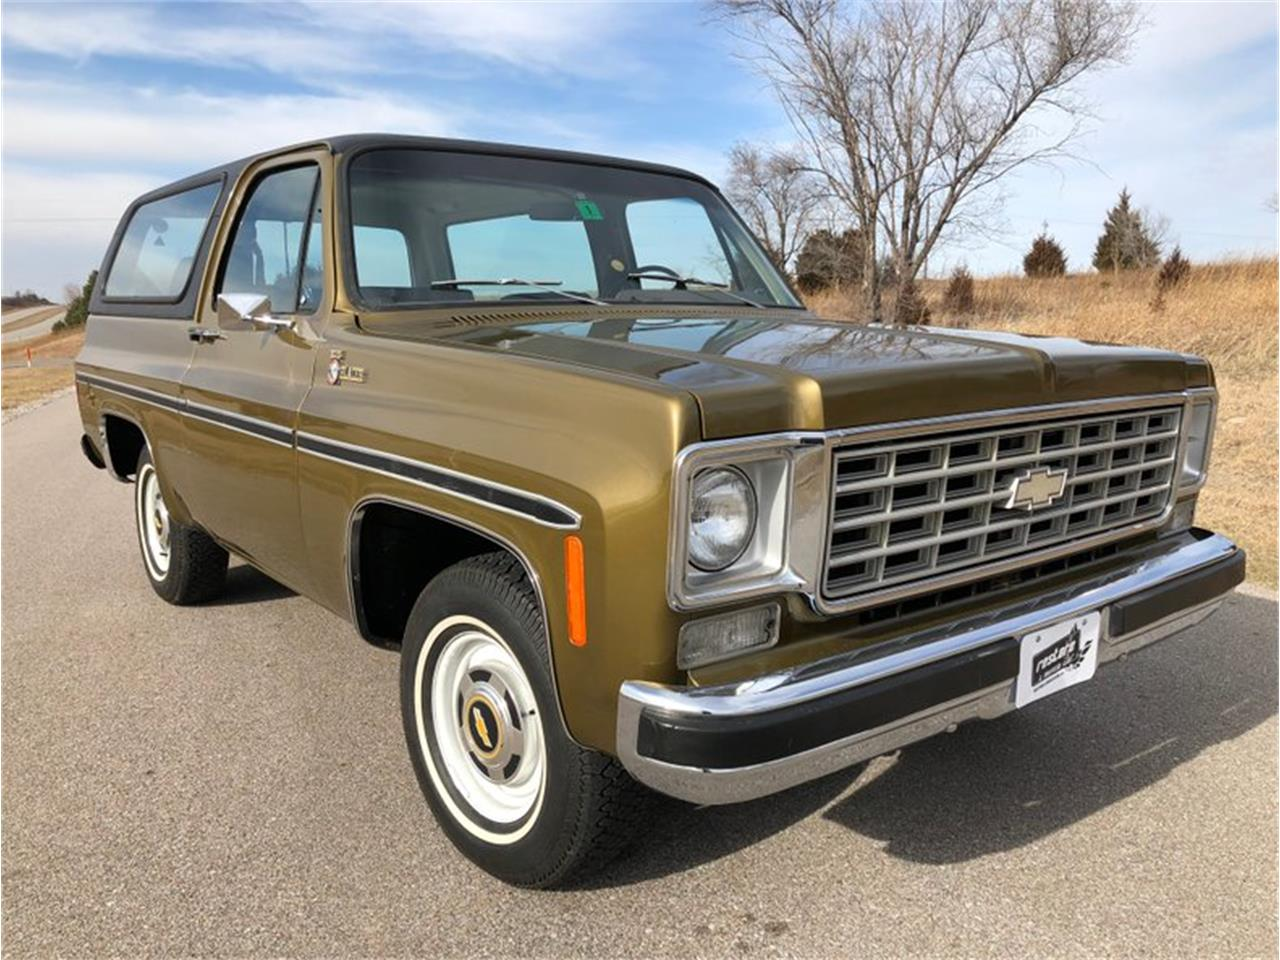 1976 Chevrolet Blazer for sale in Lincoln, NE – photo 2